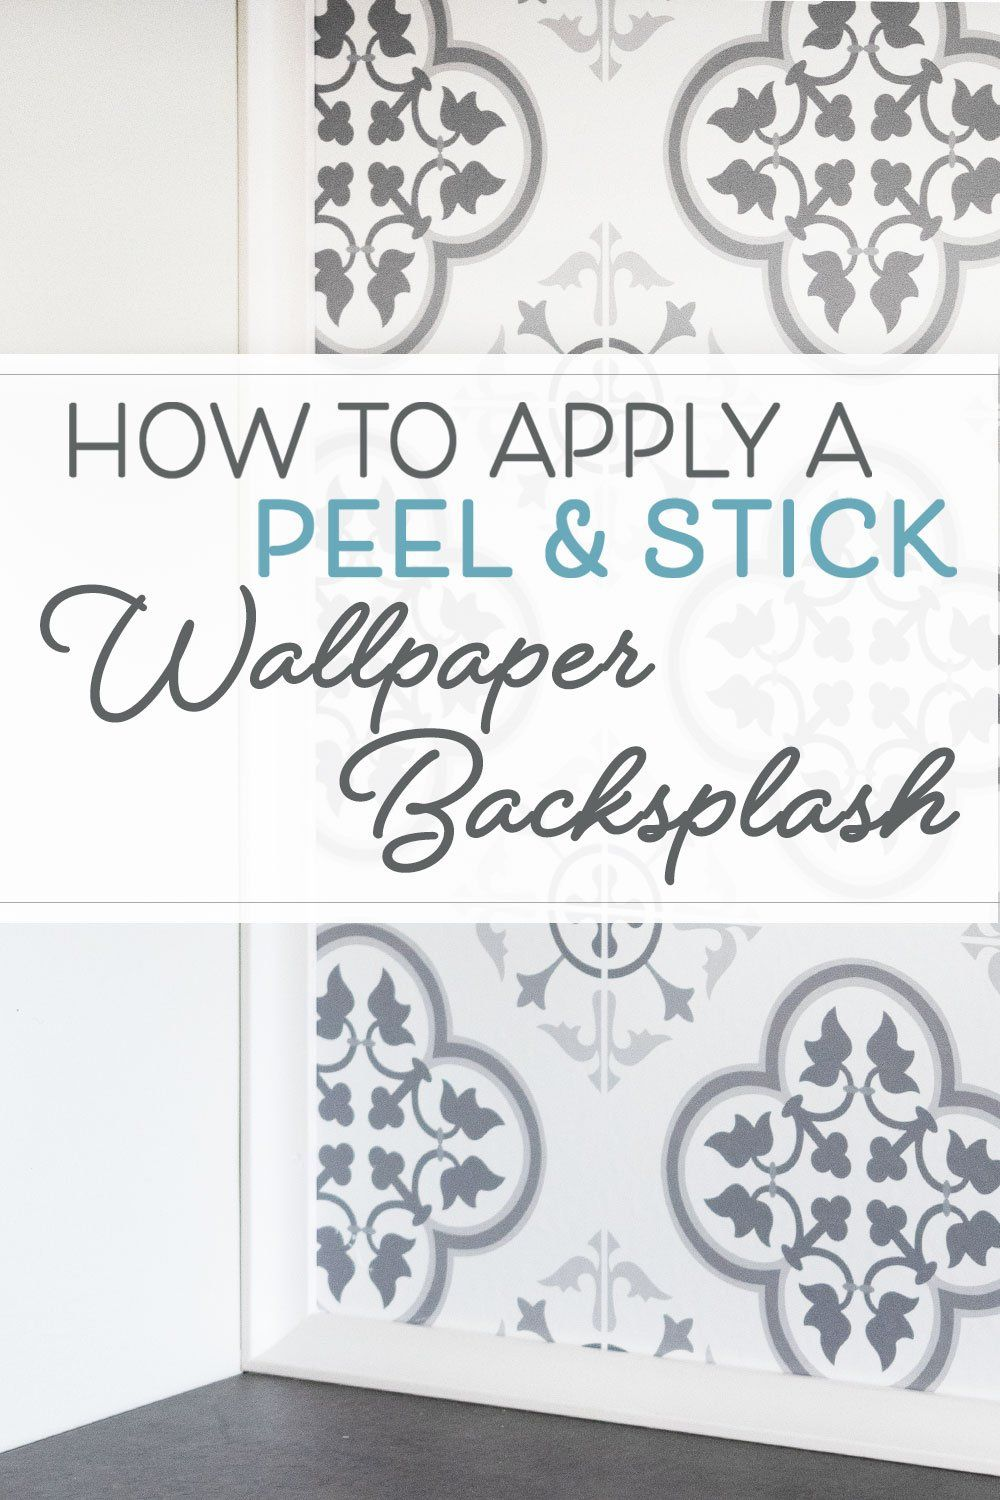 There Are Many Questions About The Quality And Installation Of Peel Stick Wallpaper I Recently I Peel And Stick Wallpaper Stick On Tiles Peel And Stick Tile